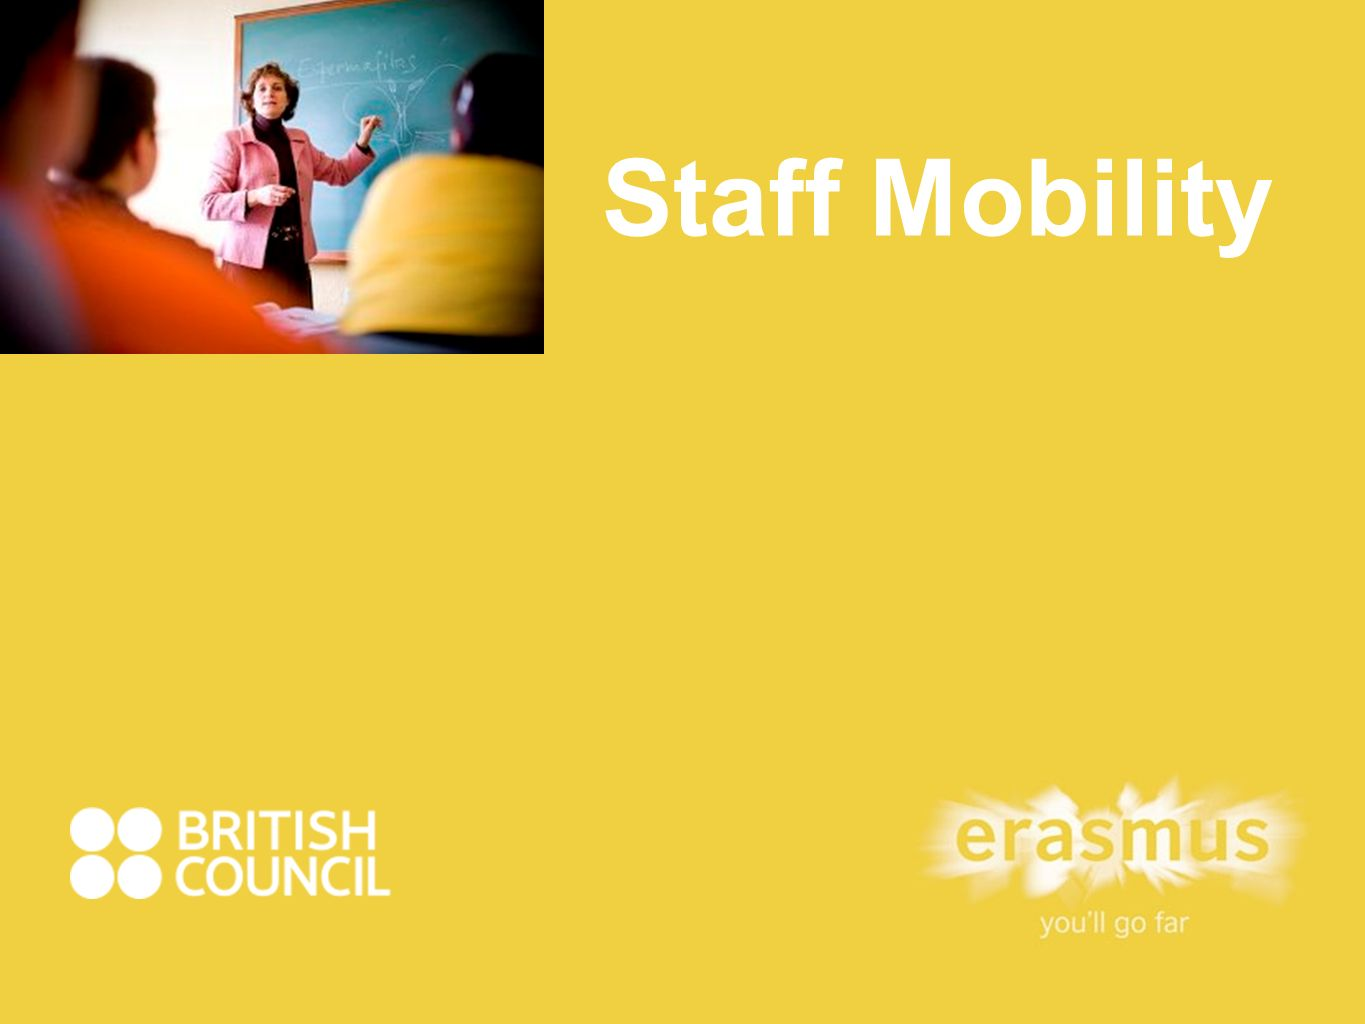 Staff Mobility